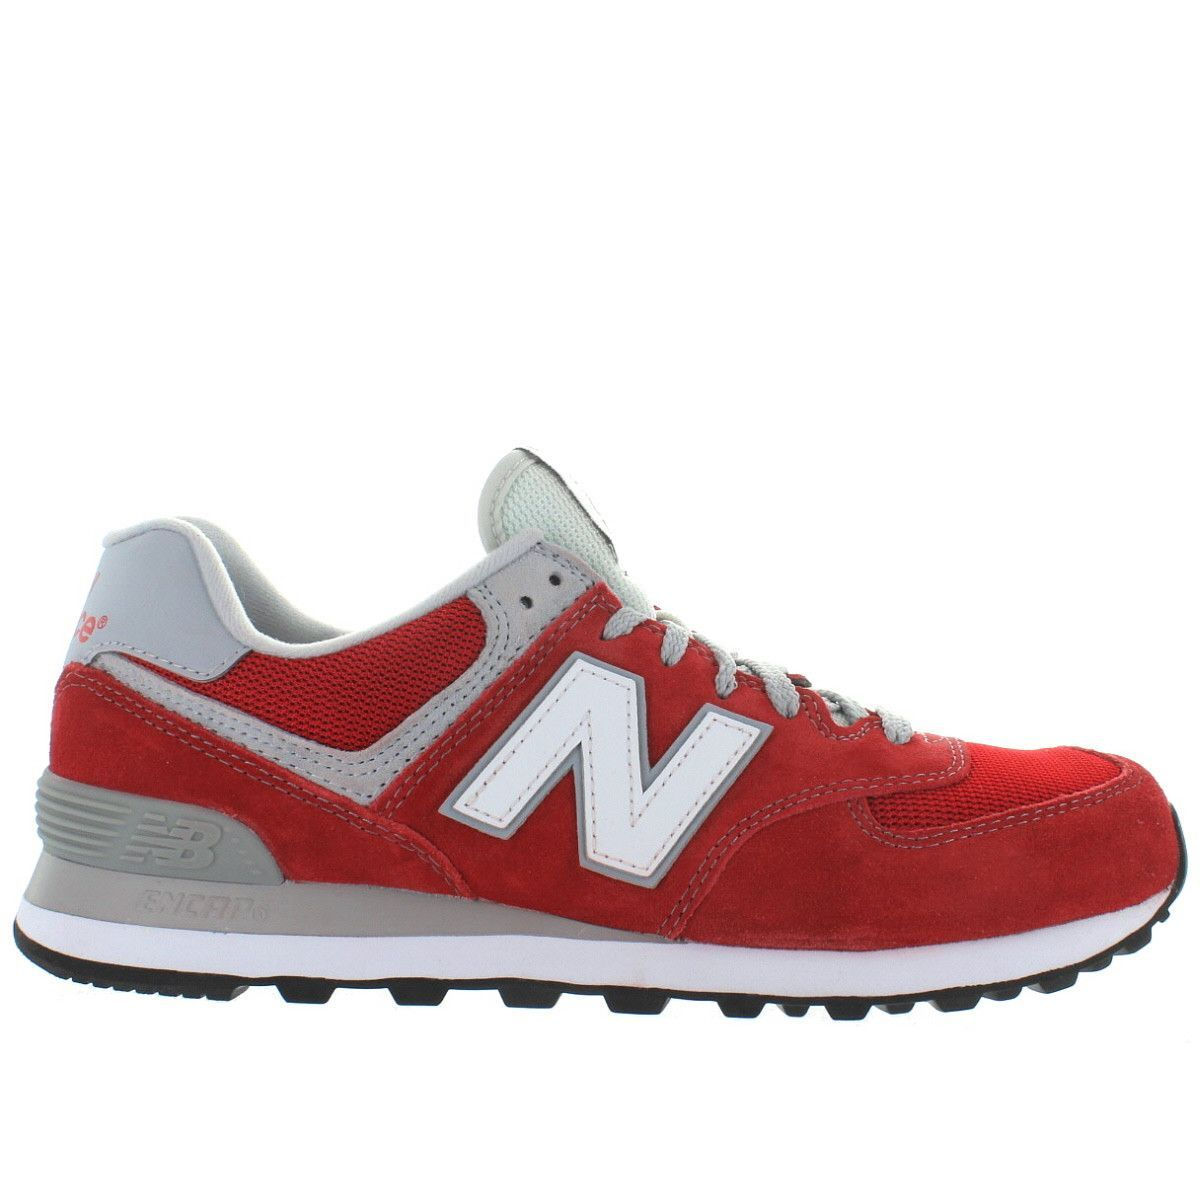 New Balance 574 - Red Suede/Mesh Classic Running Sneaker